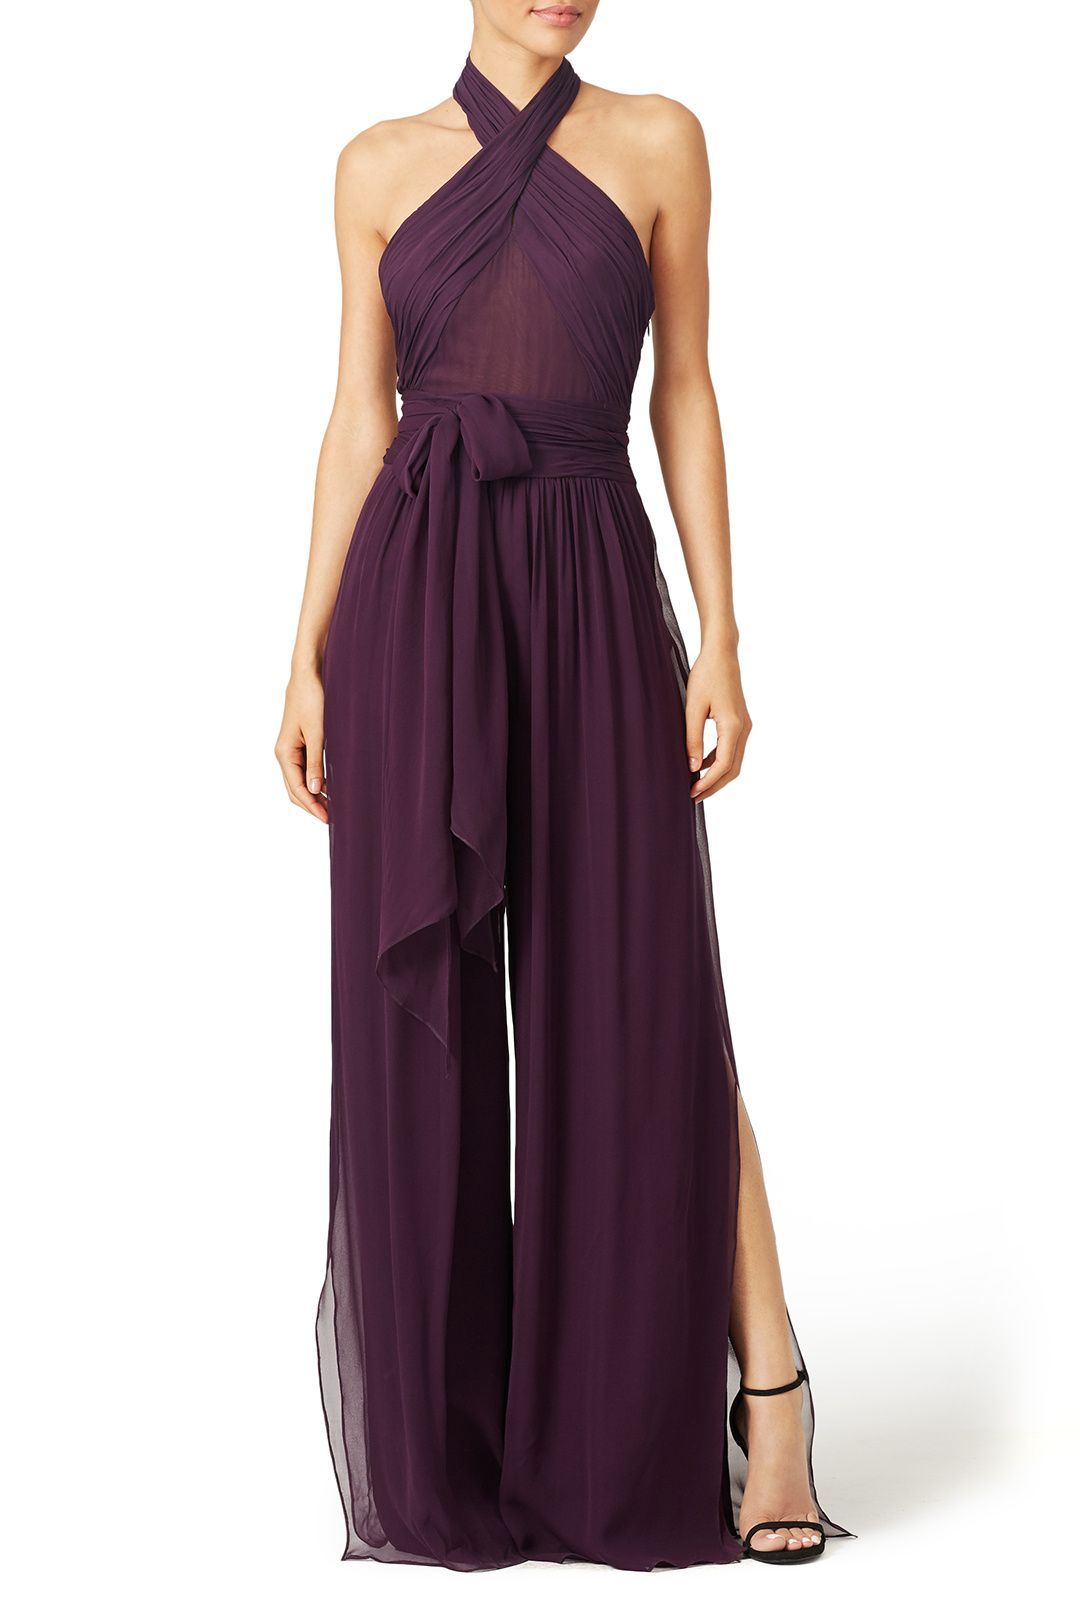 50d30bbe2e Purple Robbins Jumpsuit by Rachel Zoe for $100 | Rent The Runway ...